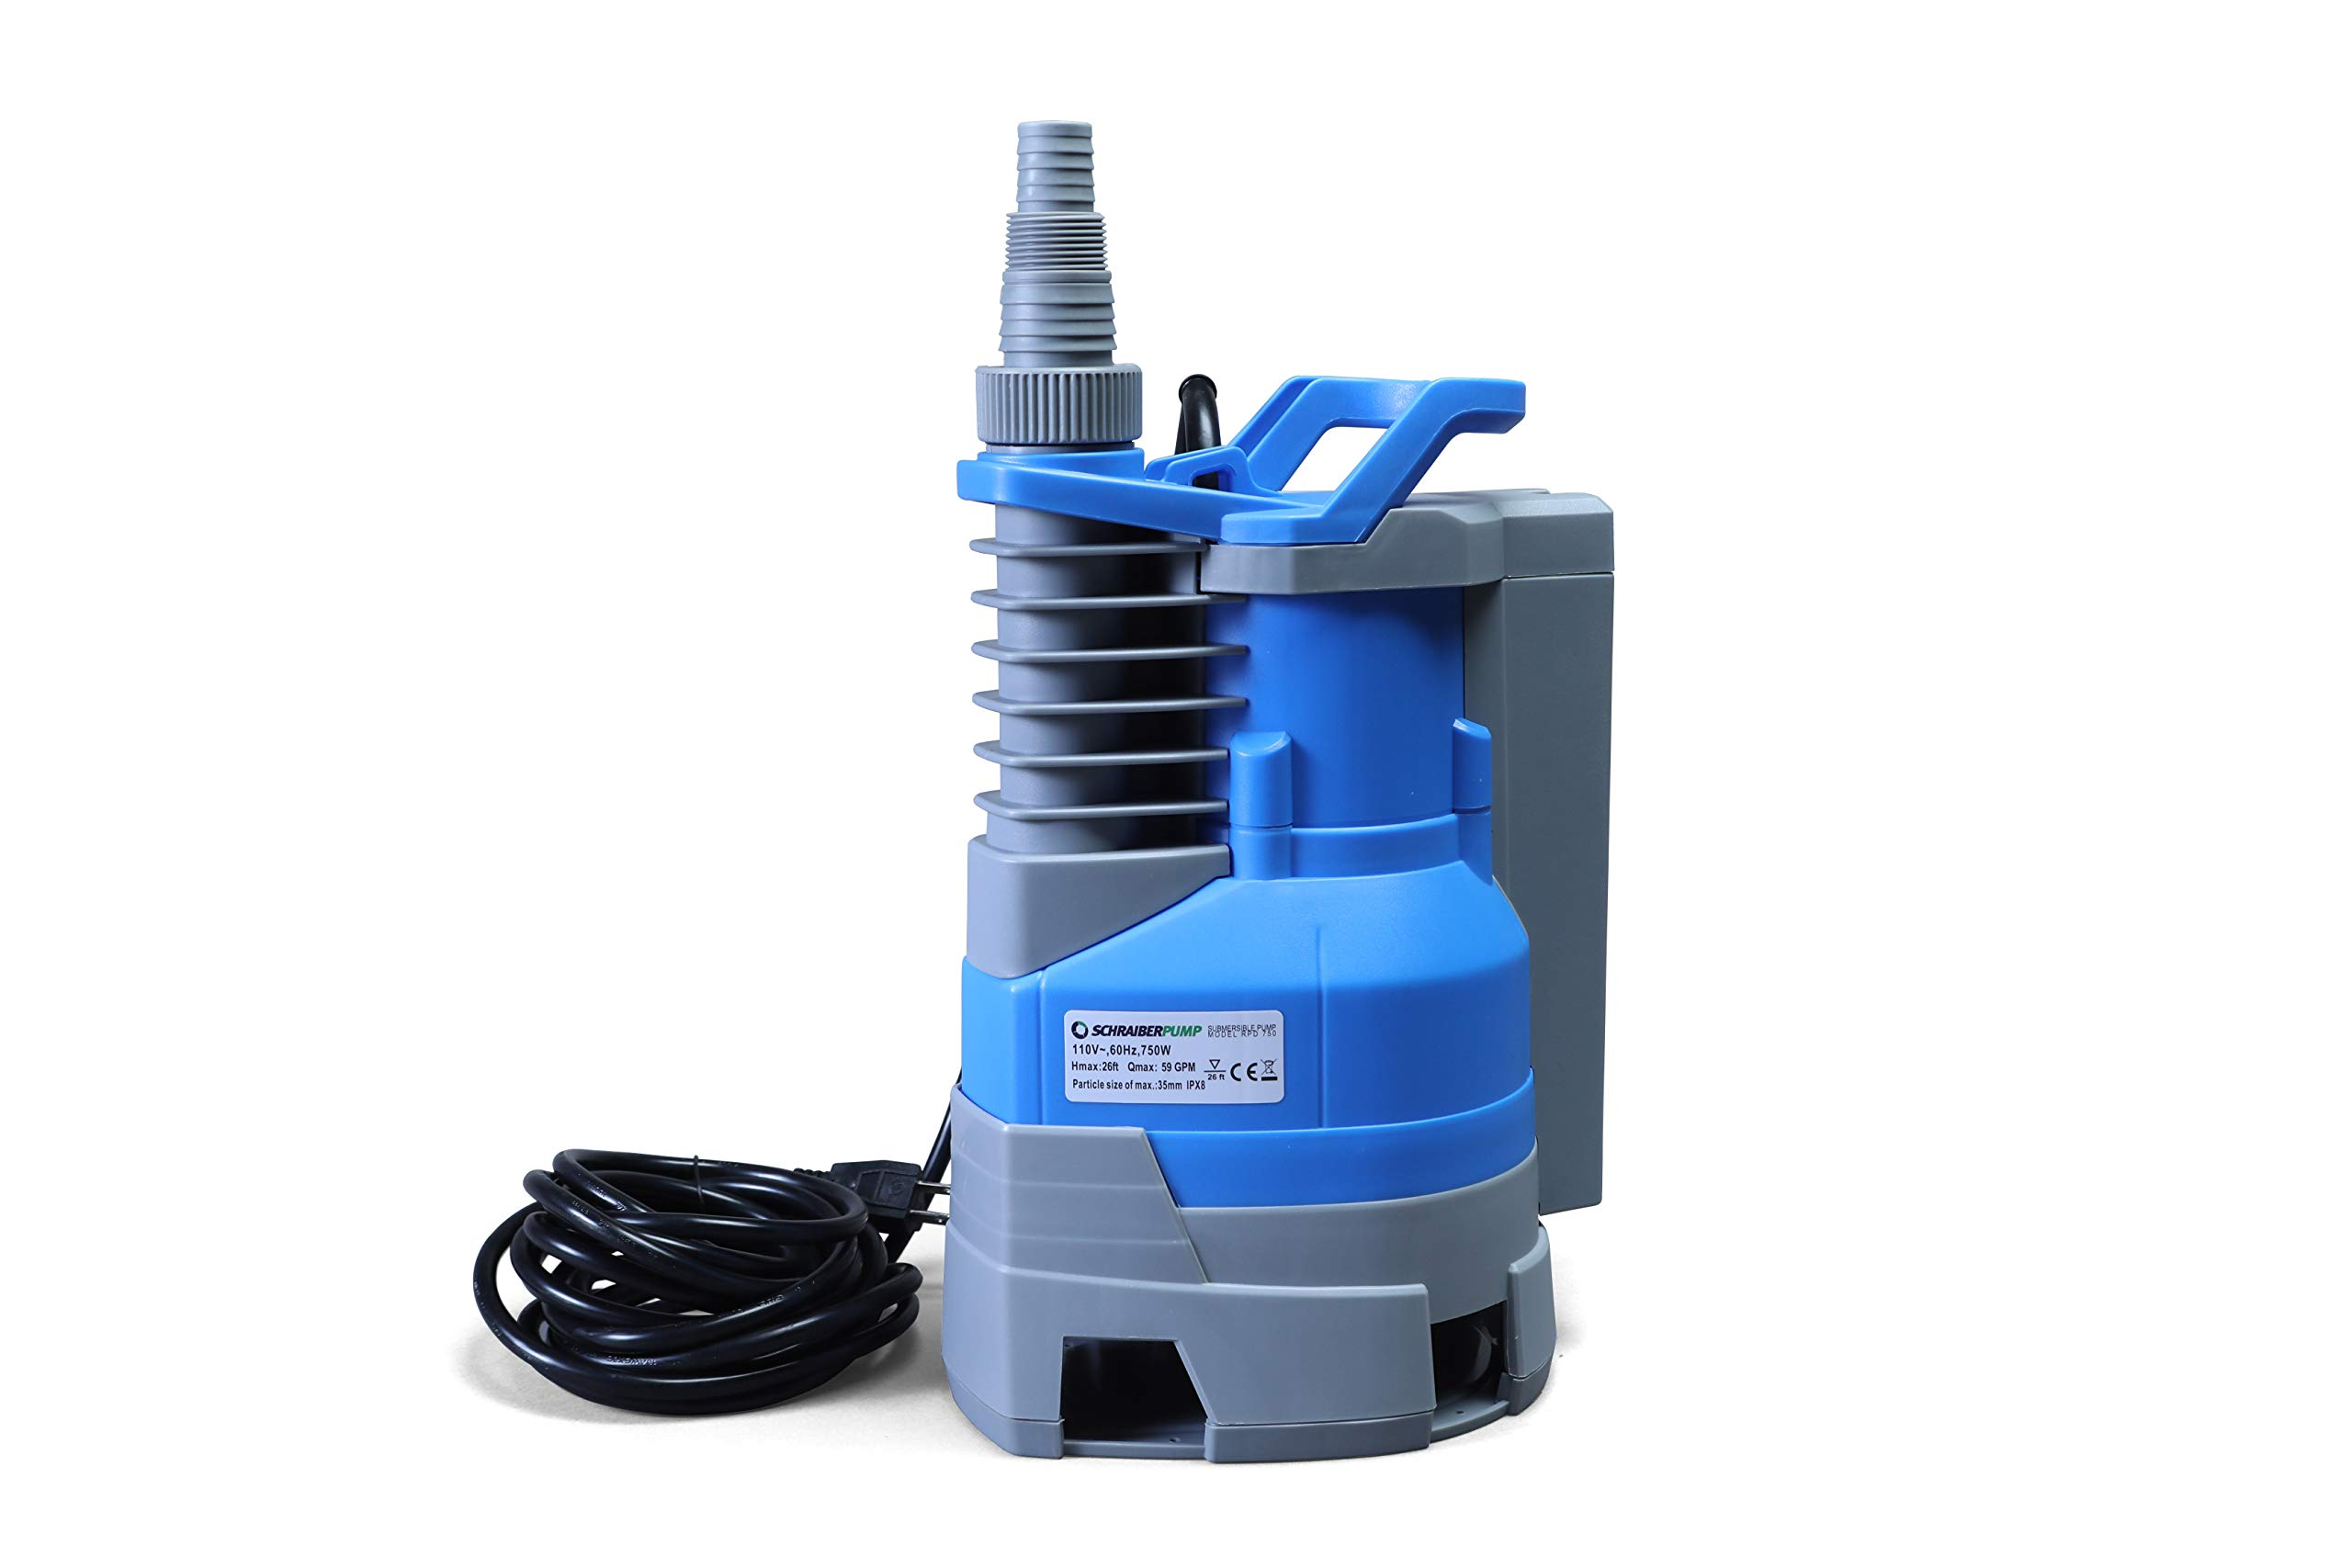 Submersible Clean/Dirty Water Sump Pump 1hp with built in automatic ON/OFF (with adjustable start and stop heights) 3540GPH, 26'Head, Thermal Protector, Copper Winding - Schraiberpump